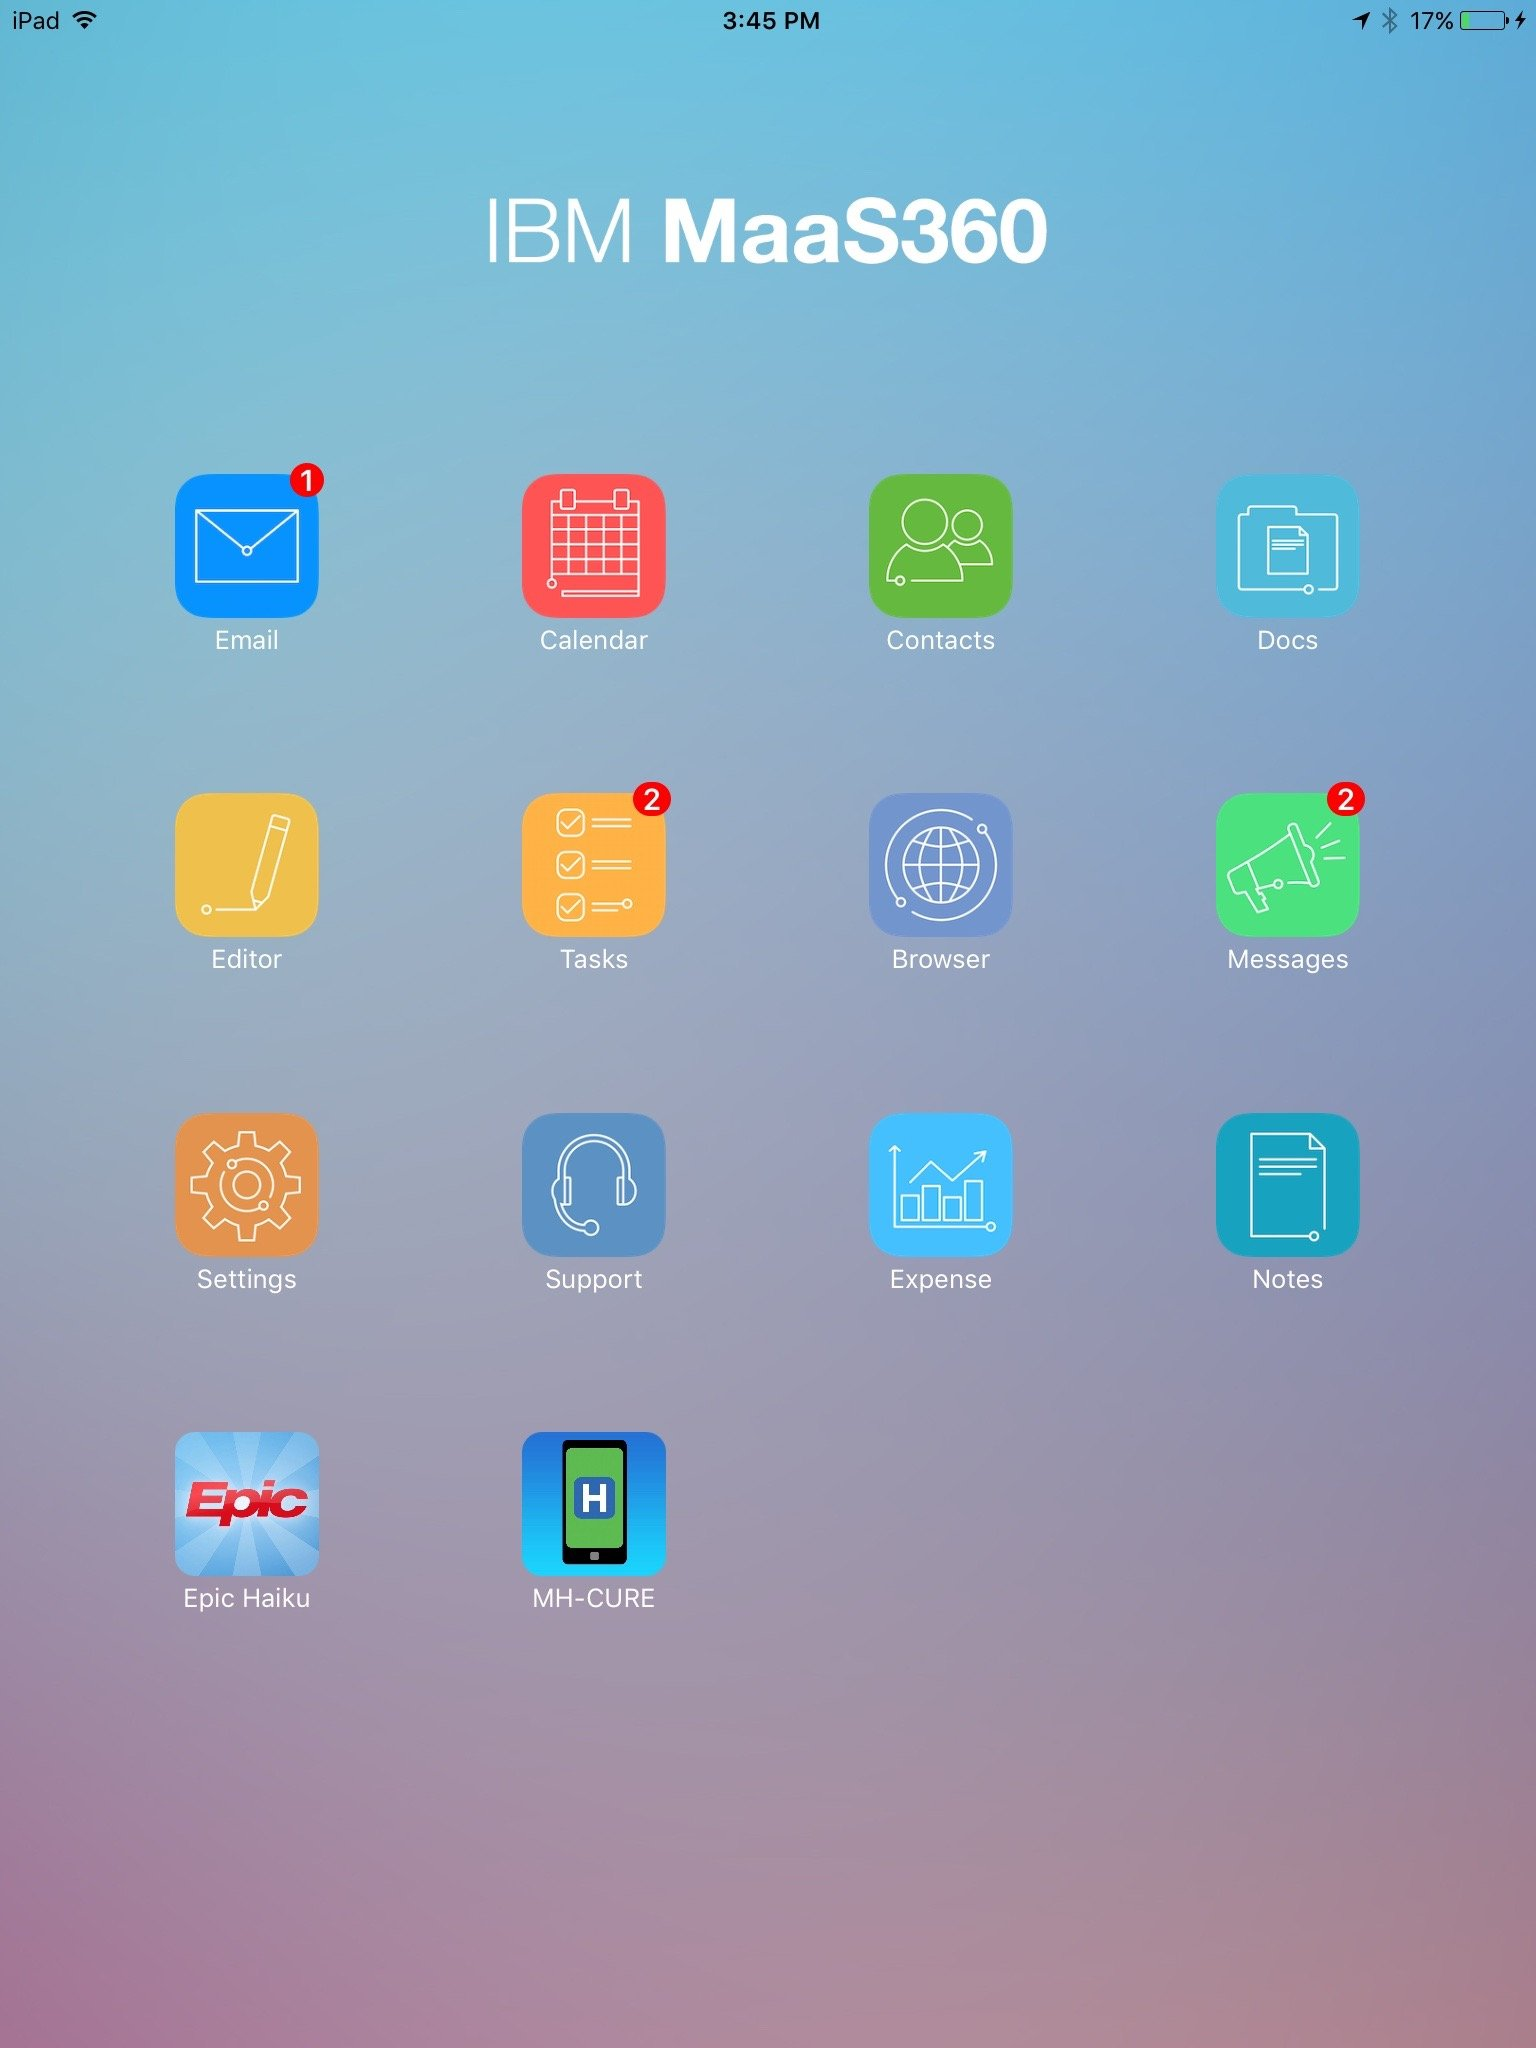 maas360-container-app-or-maas360-productivity-suite-ios-ipad-portrait